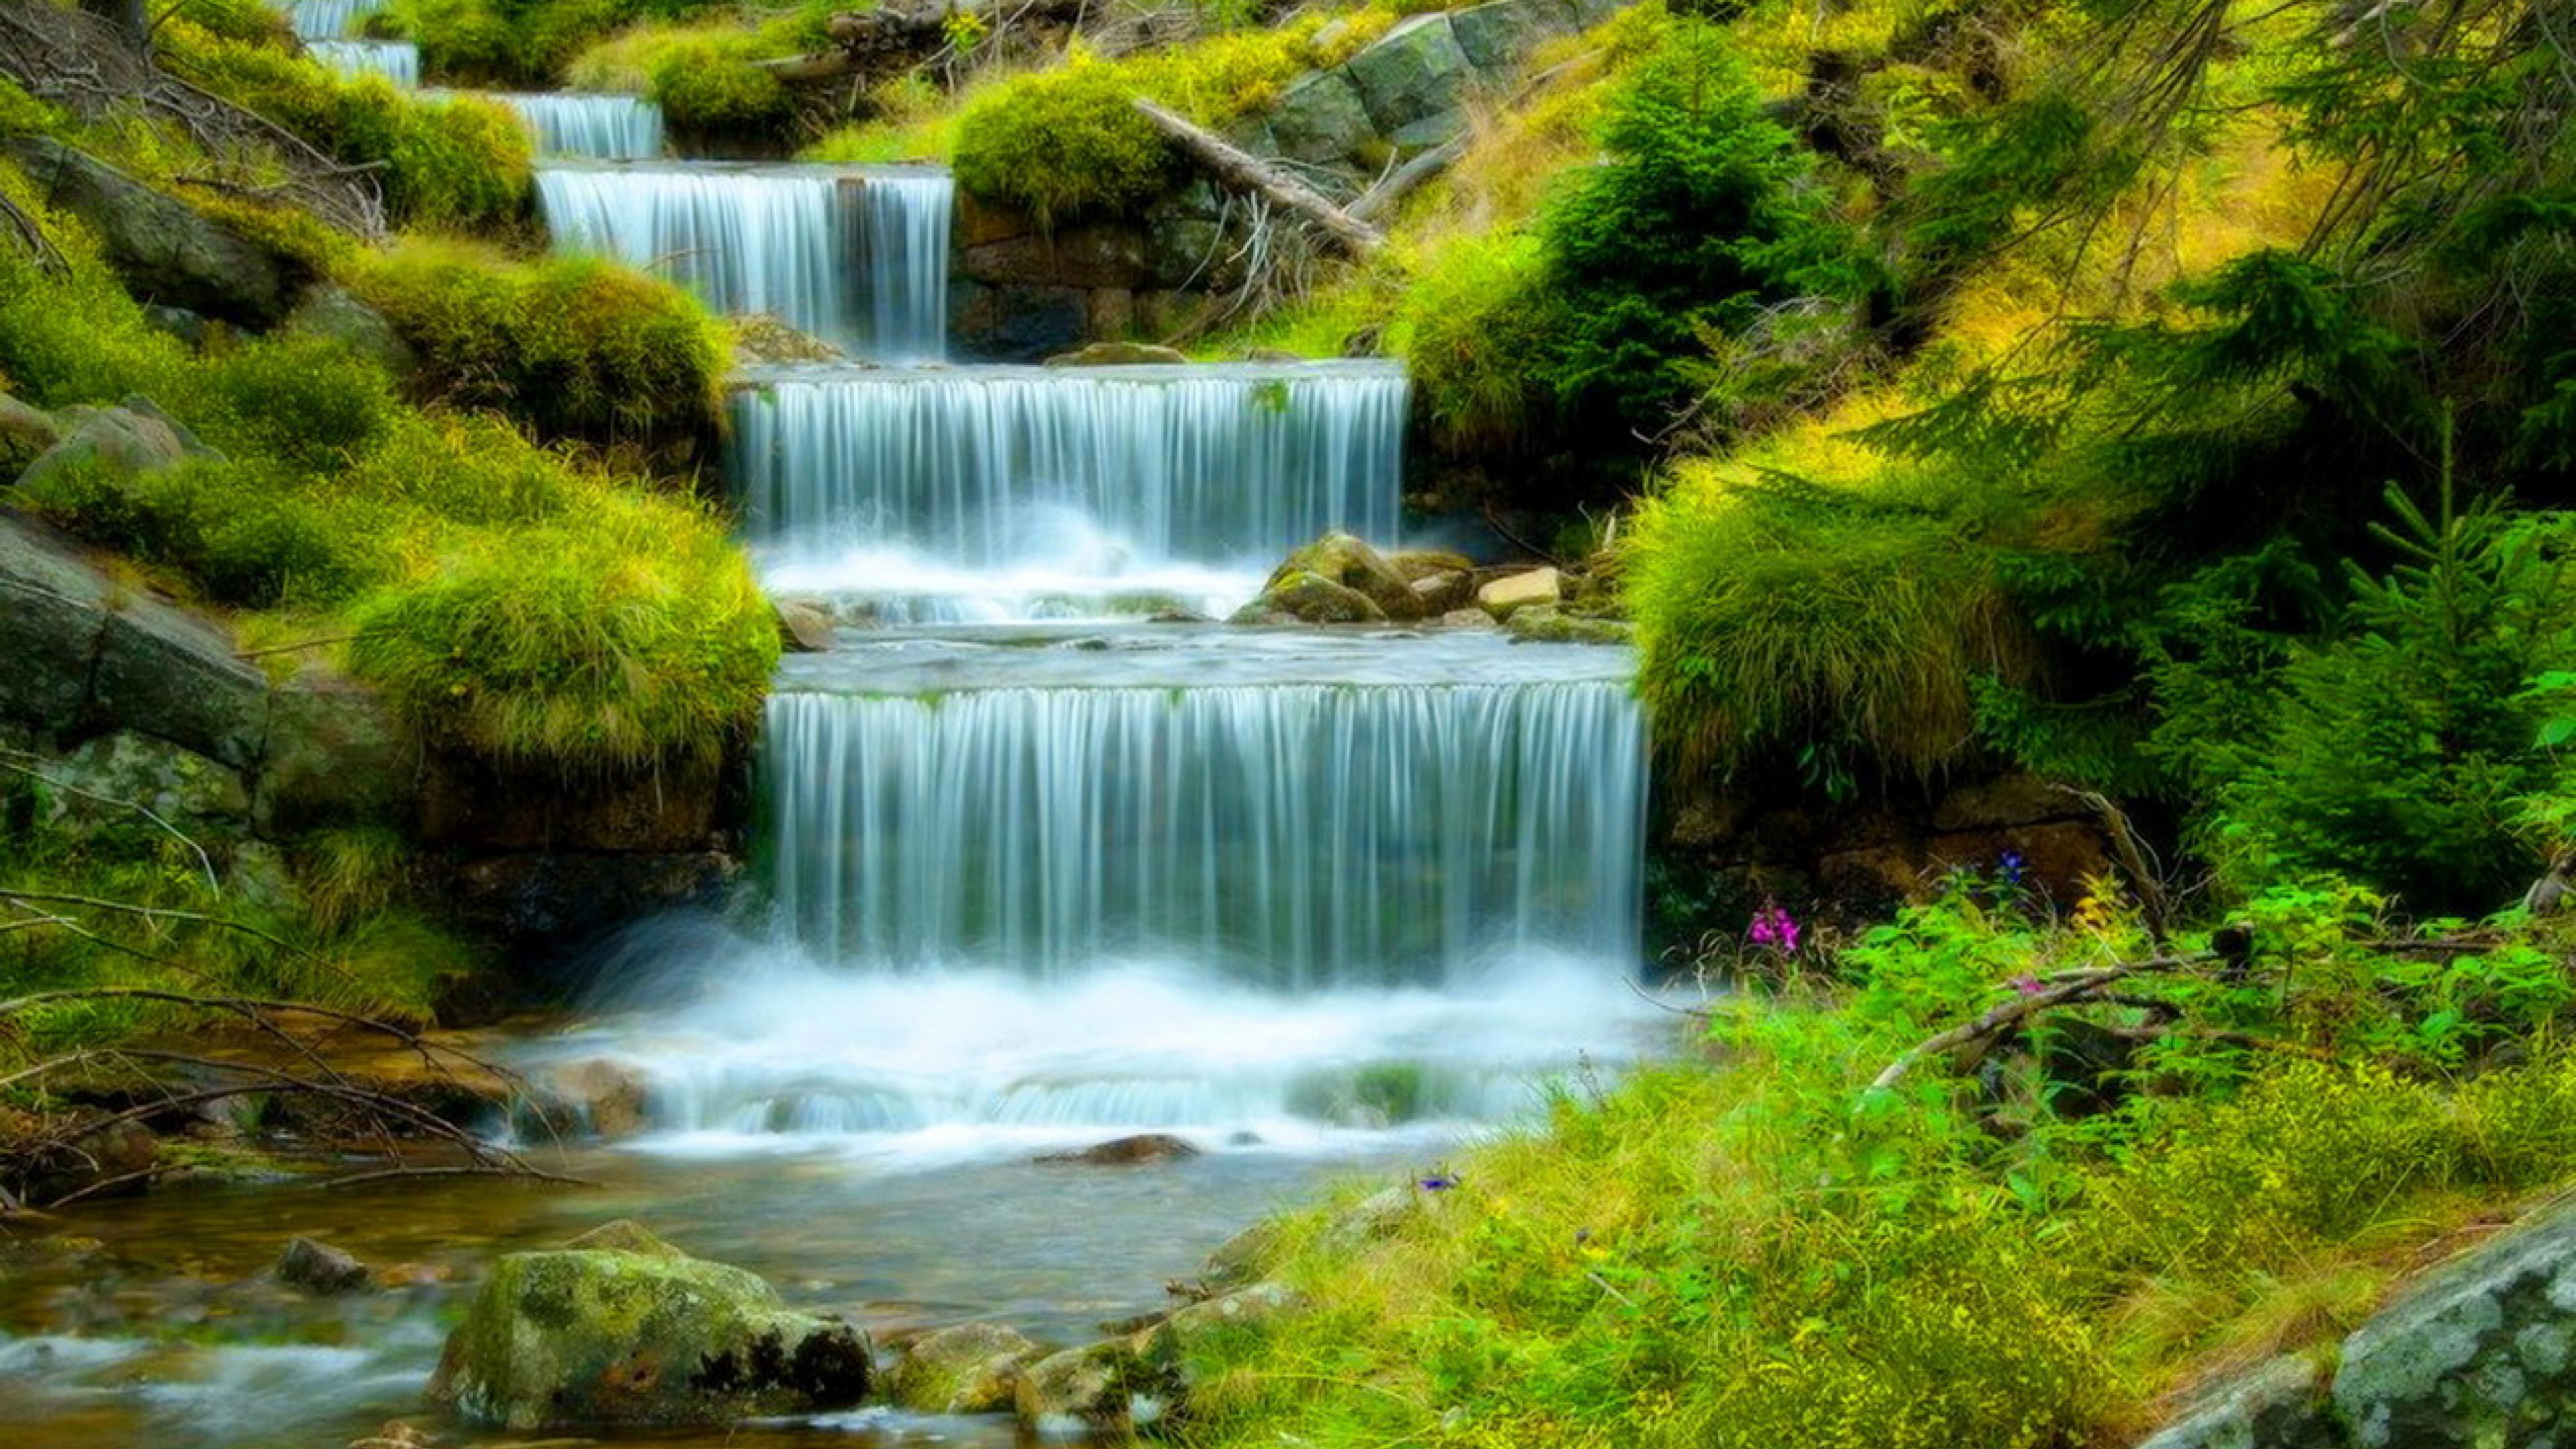 Hd Wallpapers Android Lock Screen River With Cascading Waterfall Water Stones Green Grass